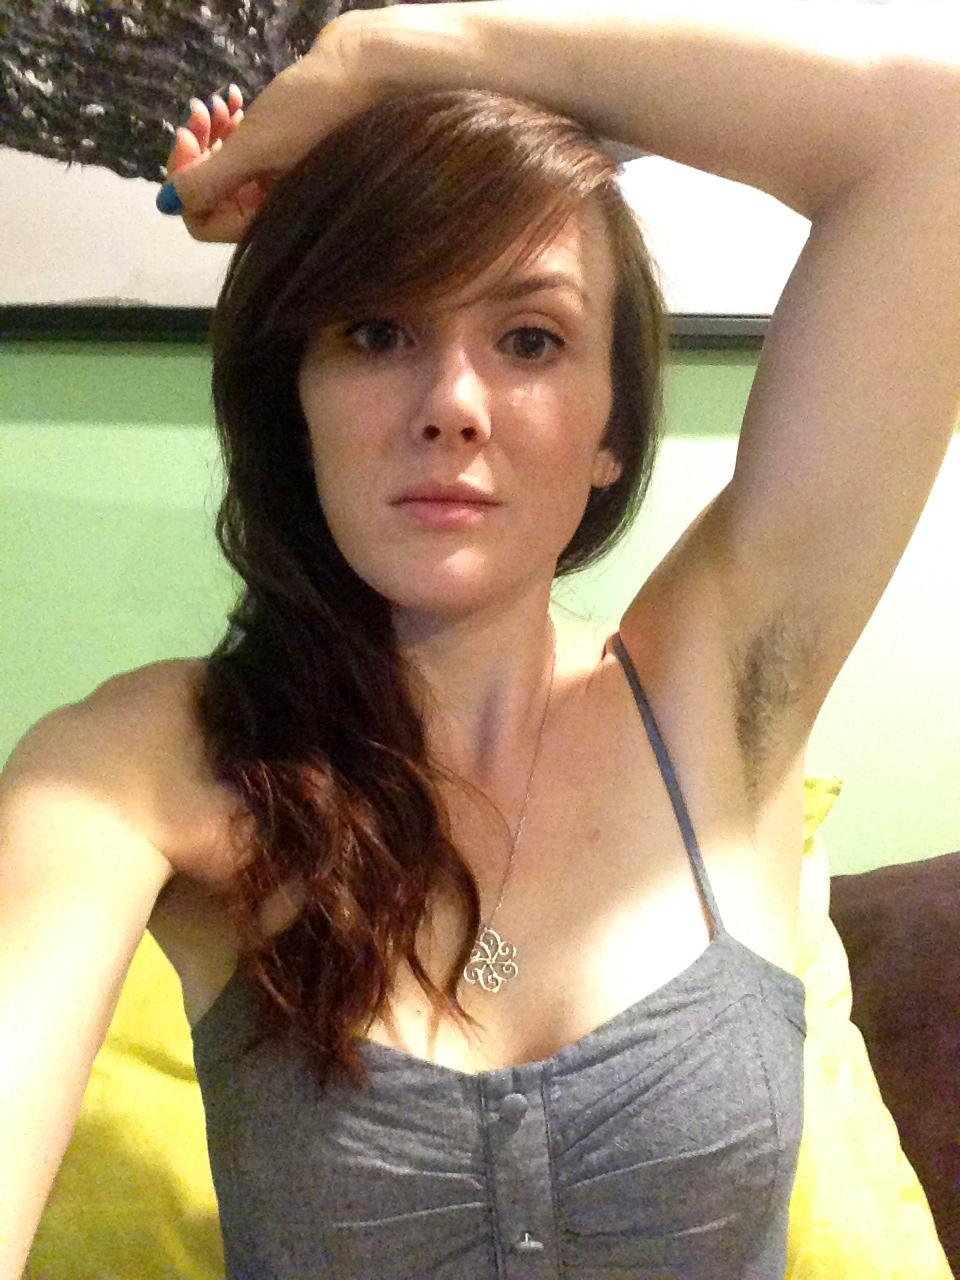 shorn or hairy: female underarms having a mainstream moment